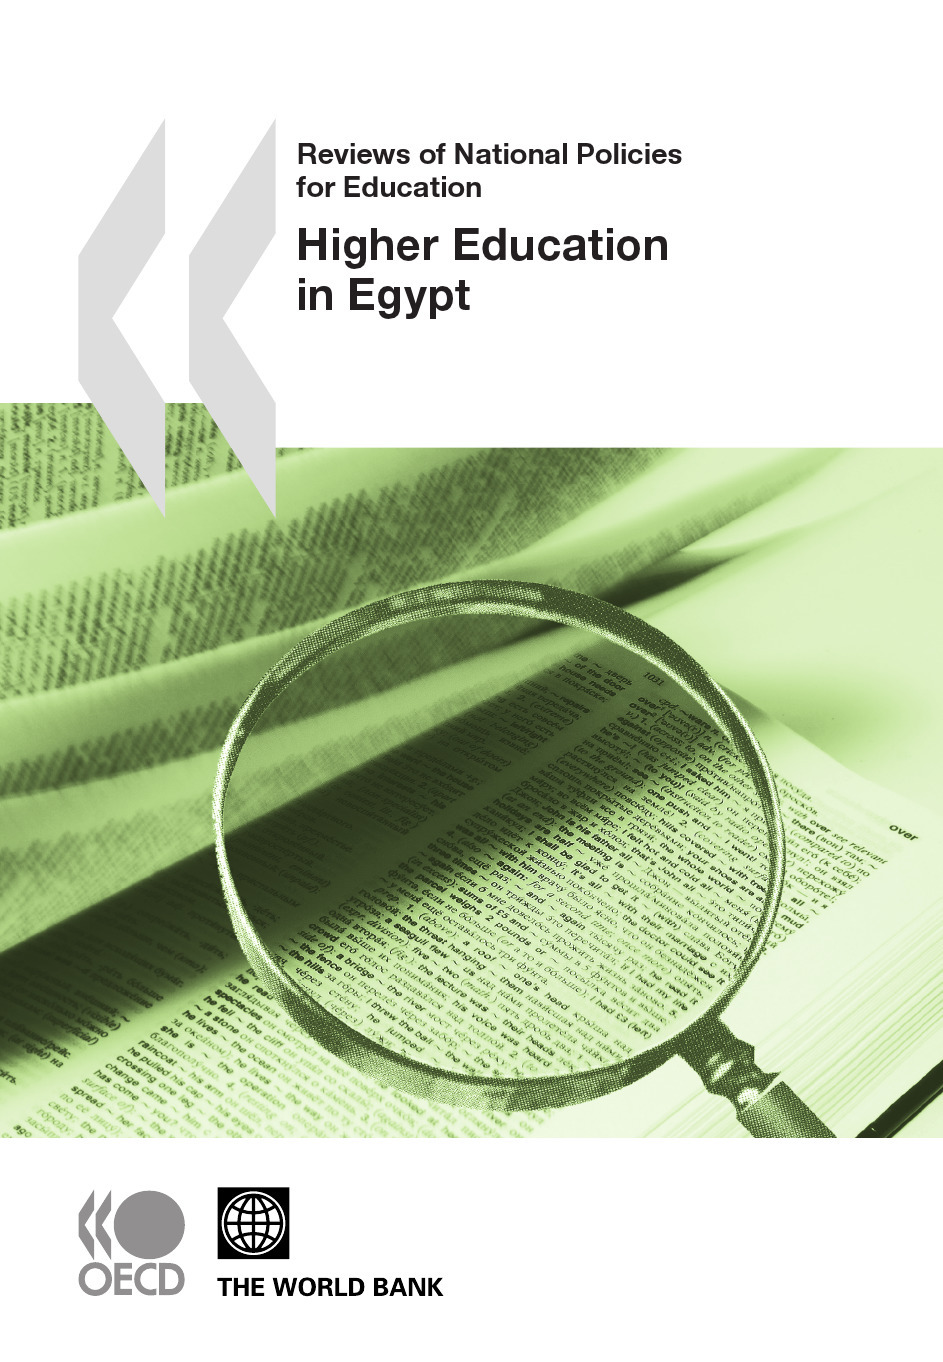 Collective Reviews of National Policies for Education: Higher Education in Egypt 2010